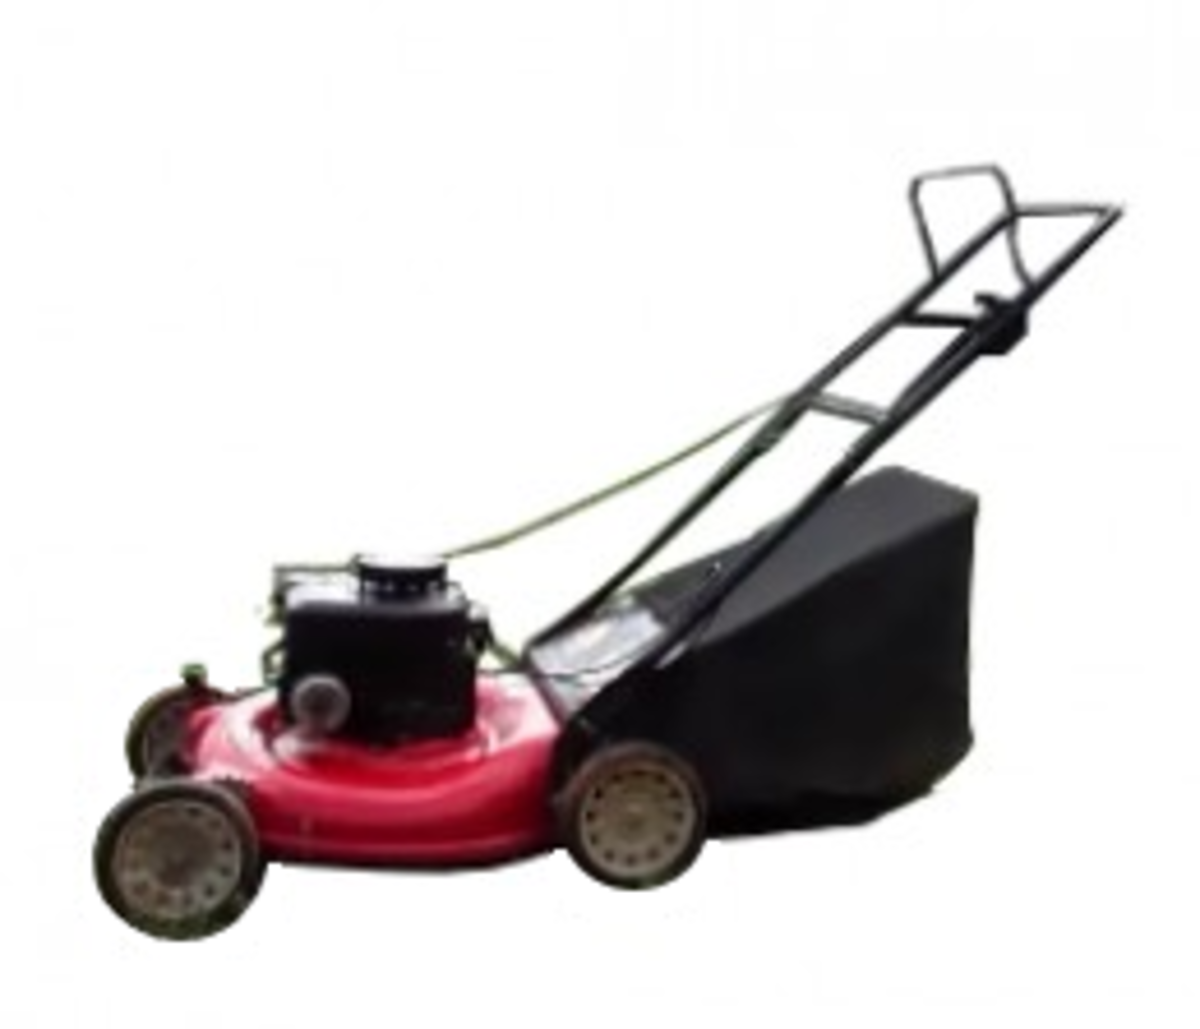 This guide will help you figure out what's wrong with your lawn mower.